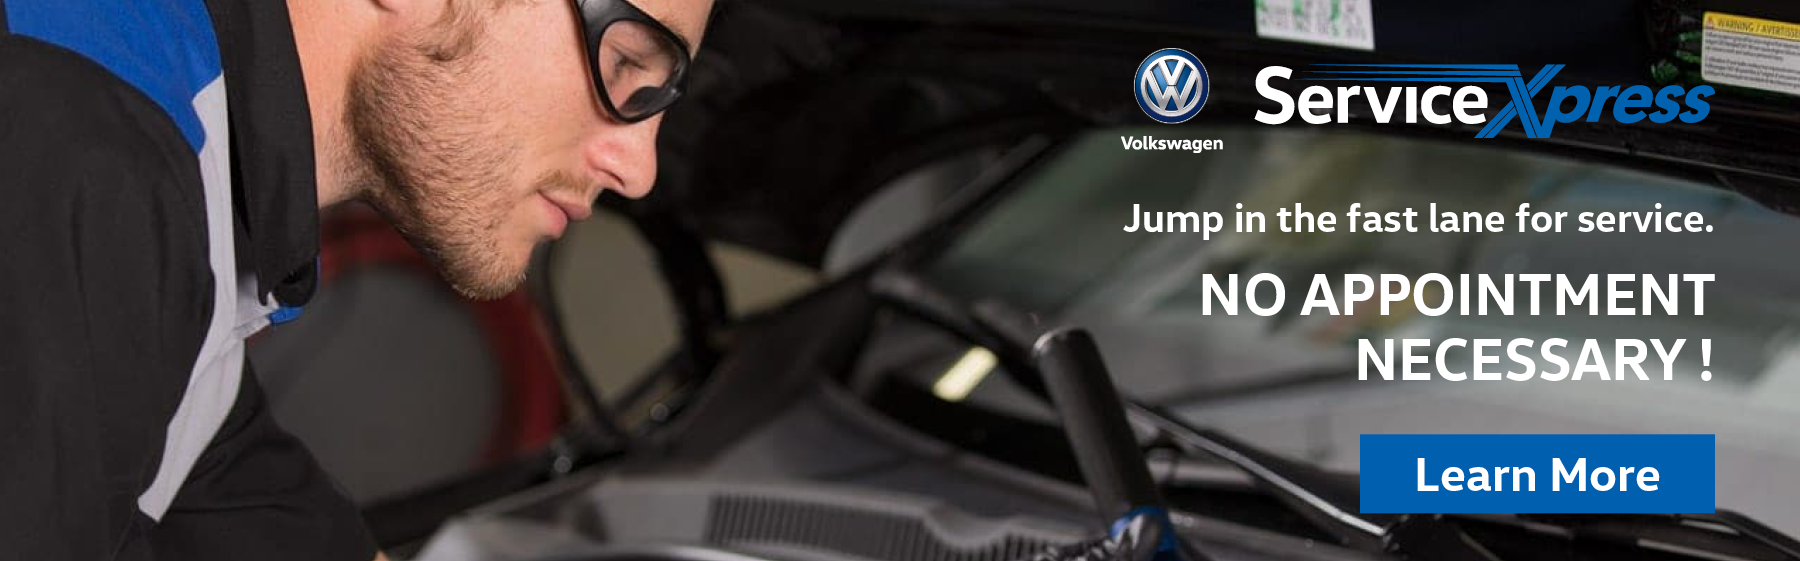 Volkswagen Service Xpress. Jump in the fast lane for service. No appointment necessary! Learn More,